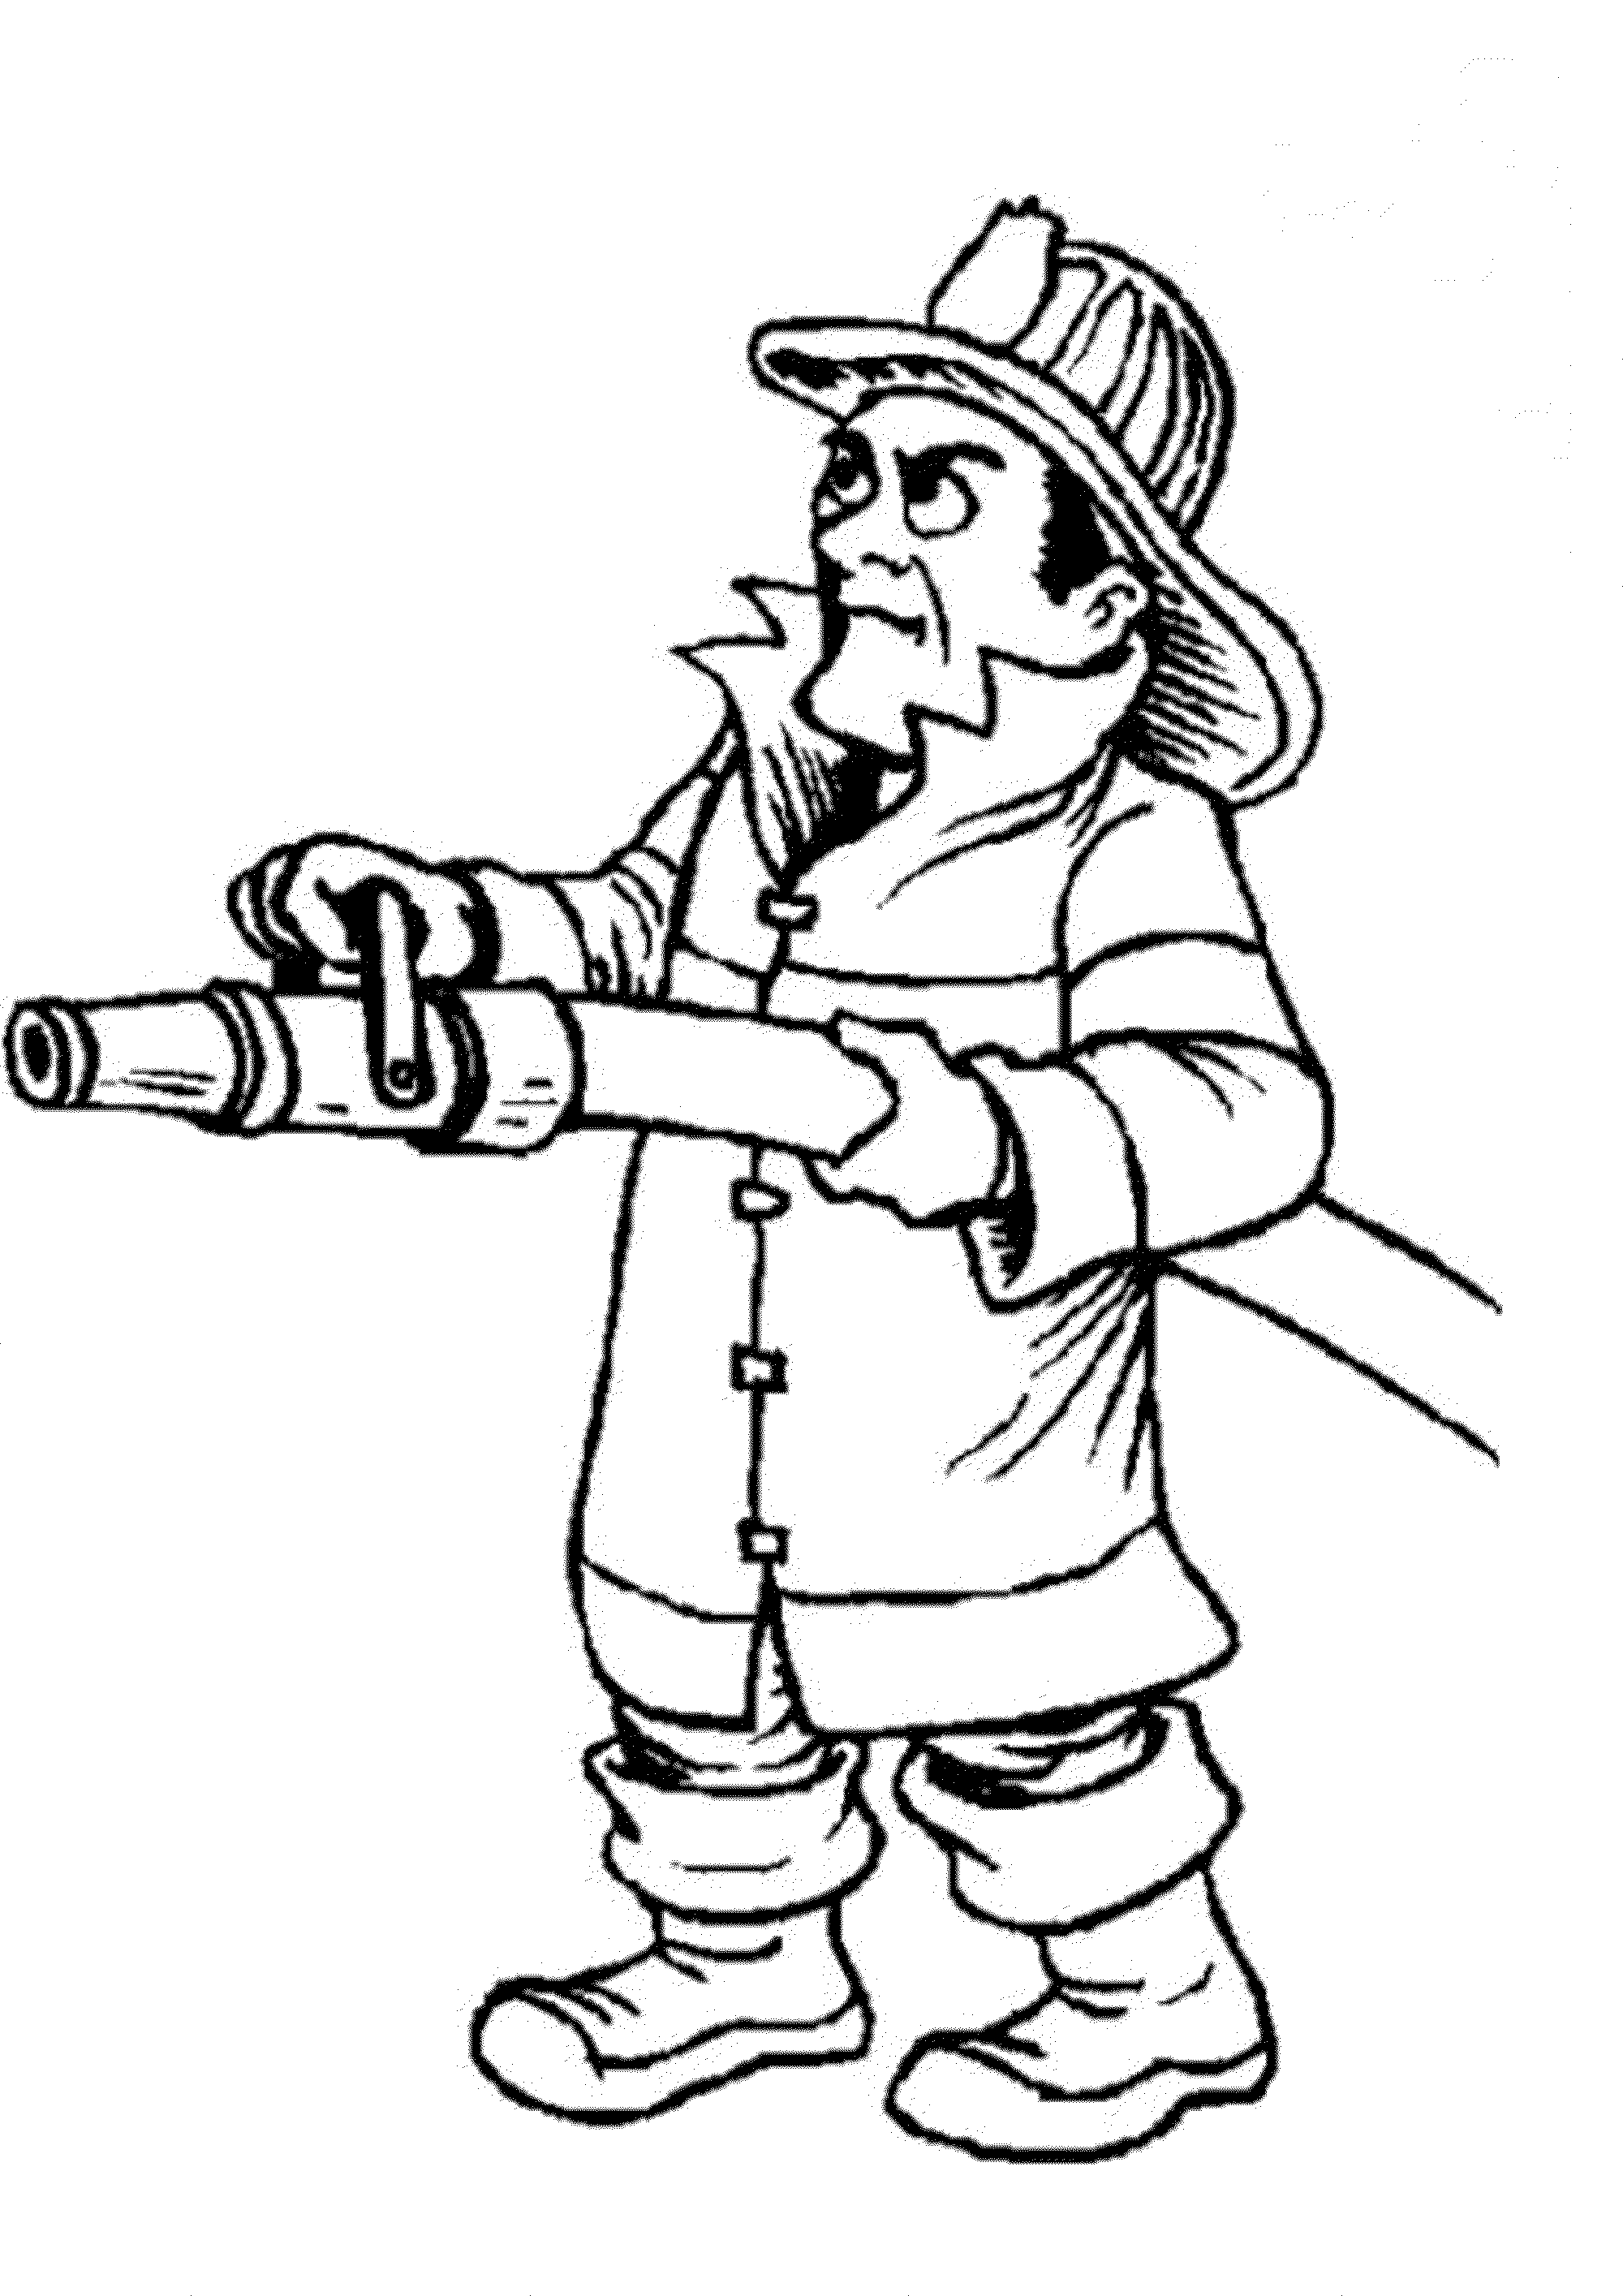 check - Fireman Coloring Pages